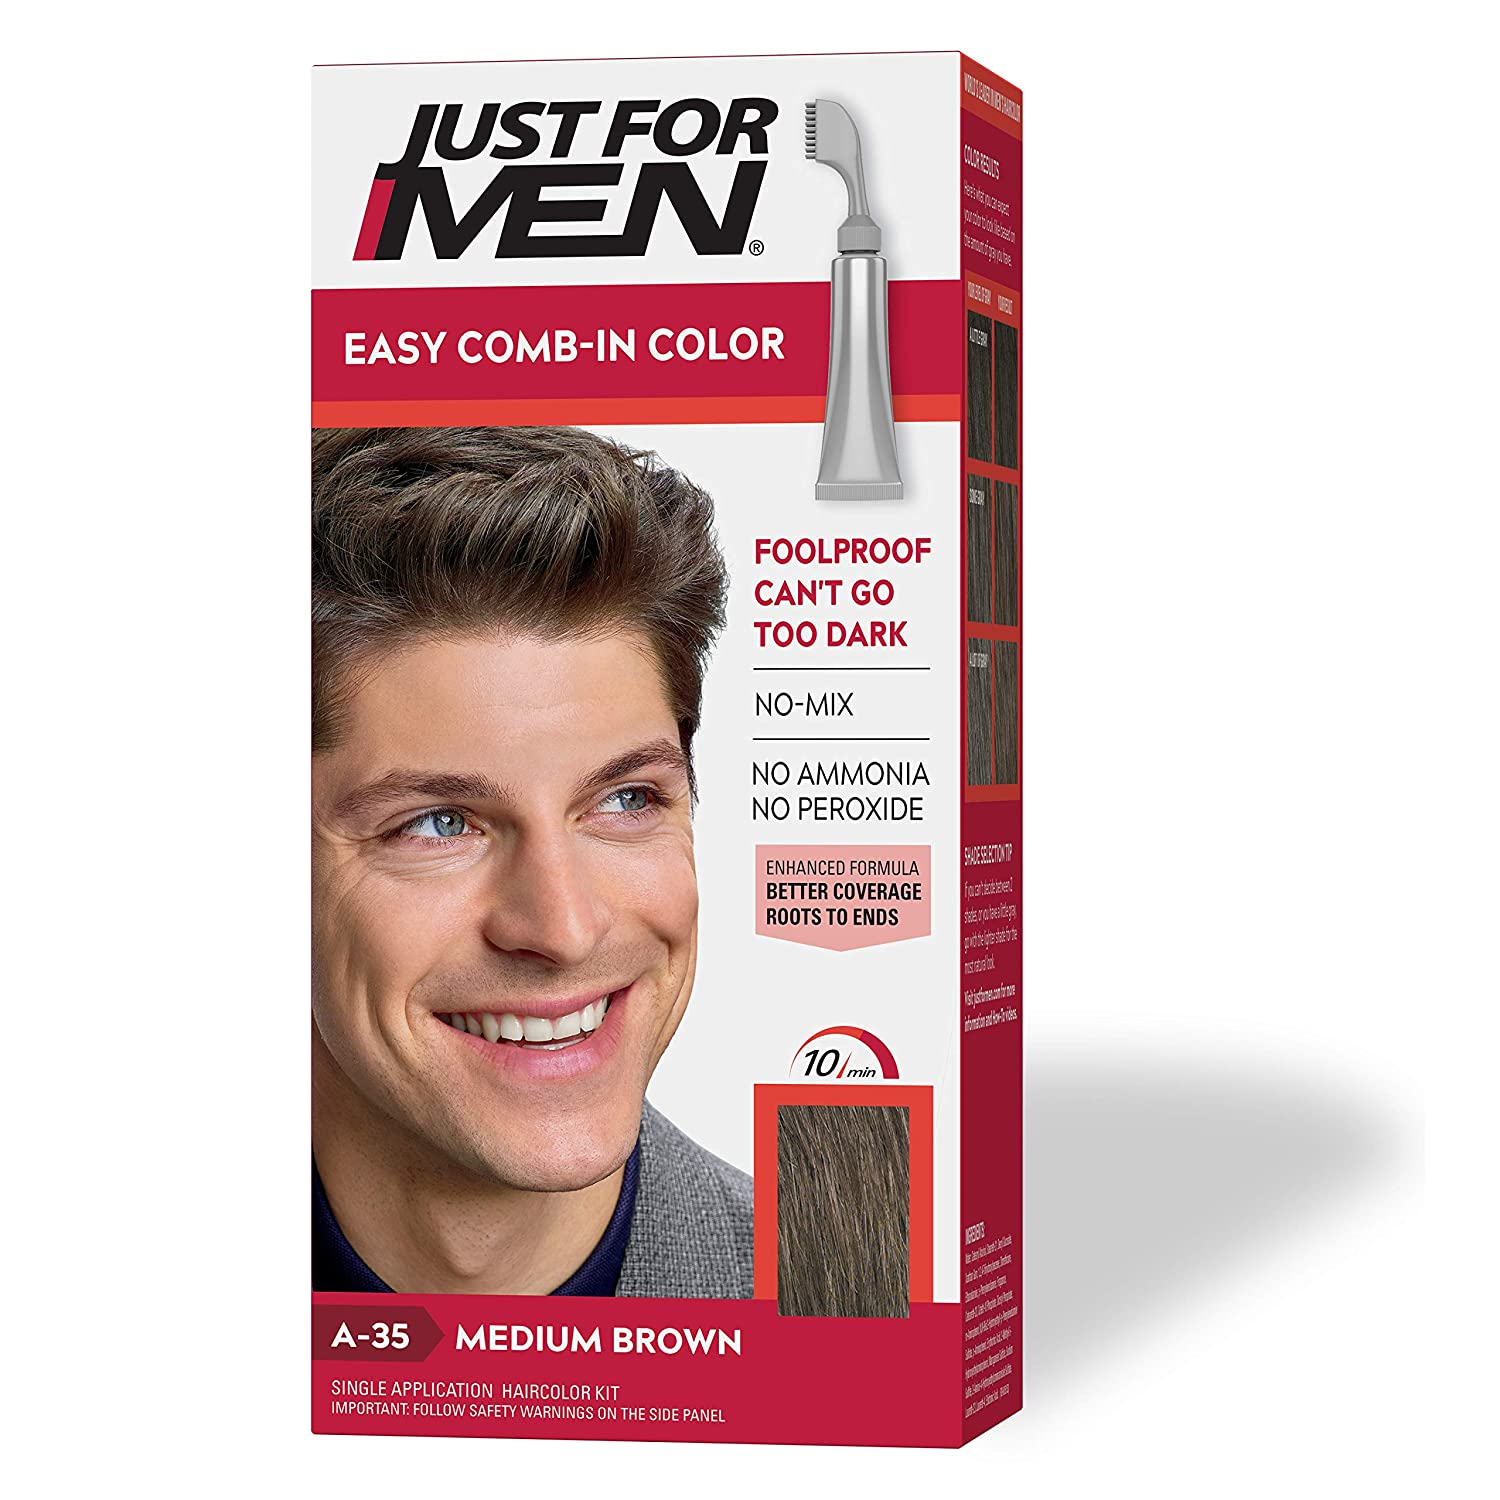 Just For Men Easy Comb-In Color Review